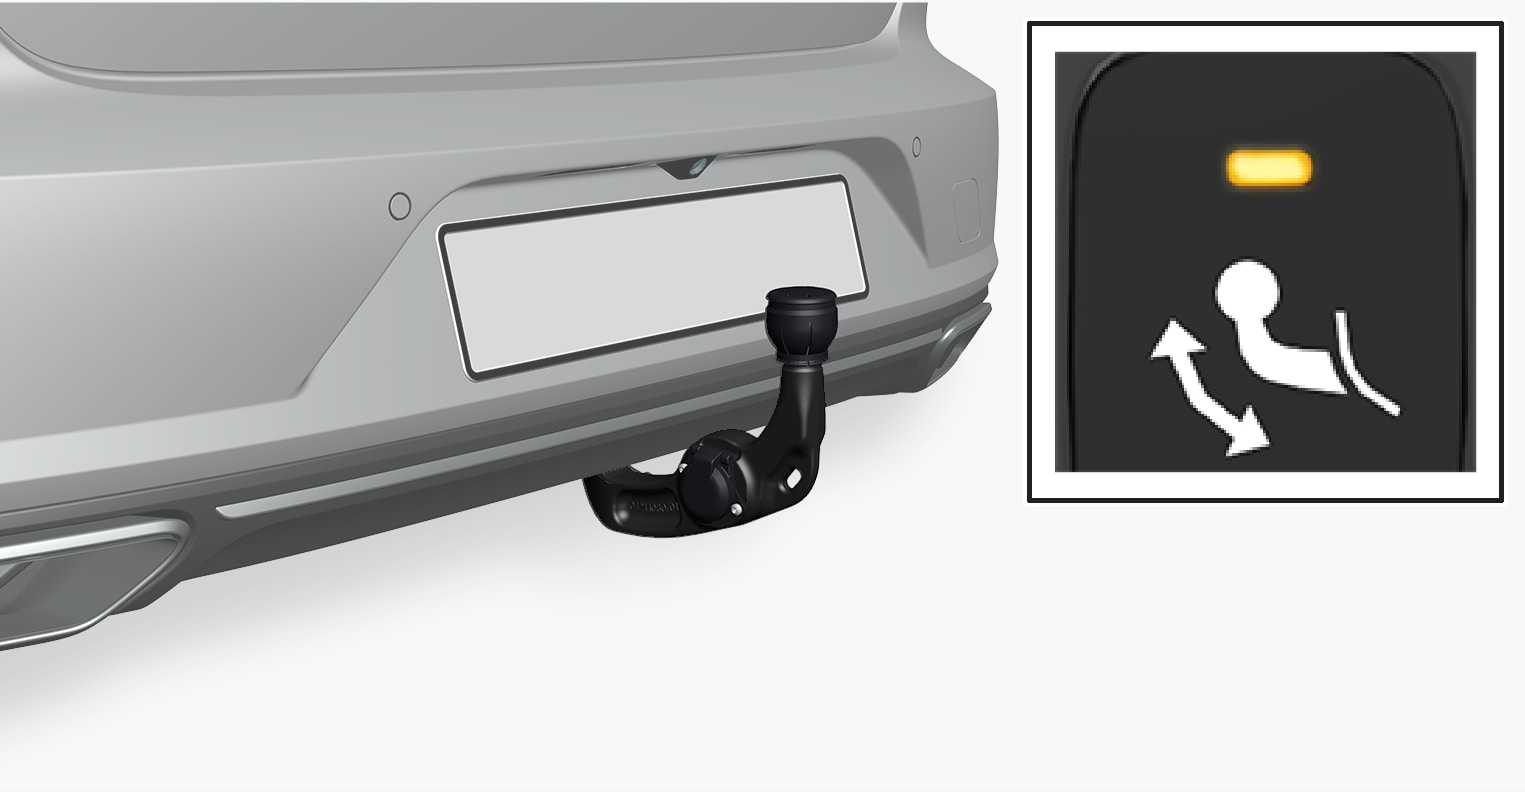 P5-1617-S90-V90-Swivable towbar and switch foldout step 3